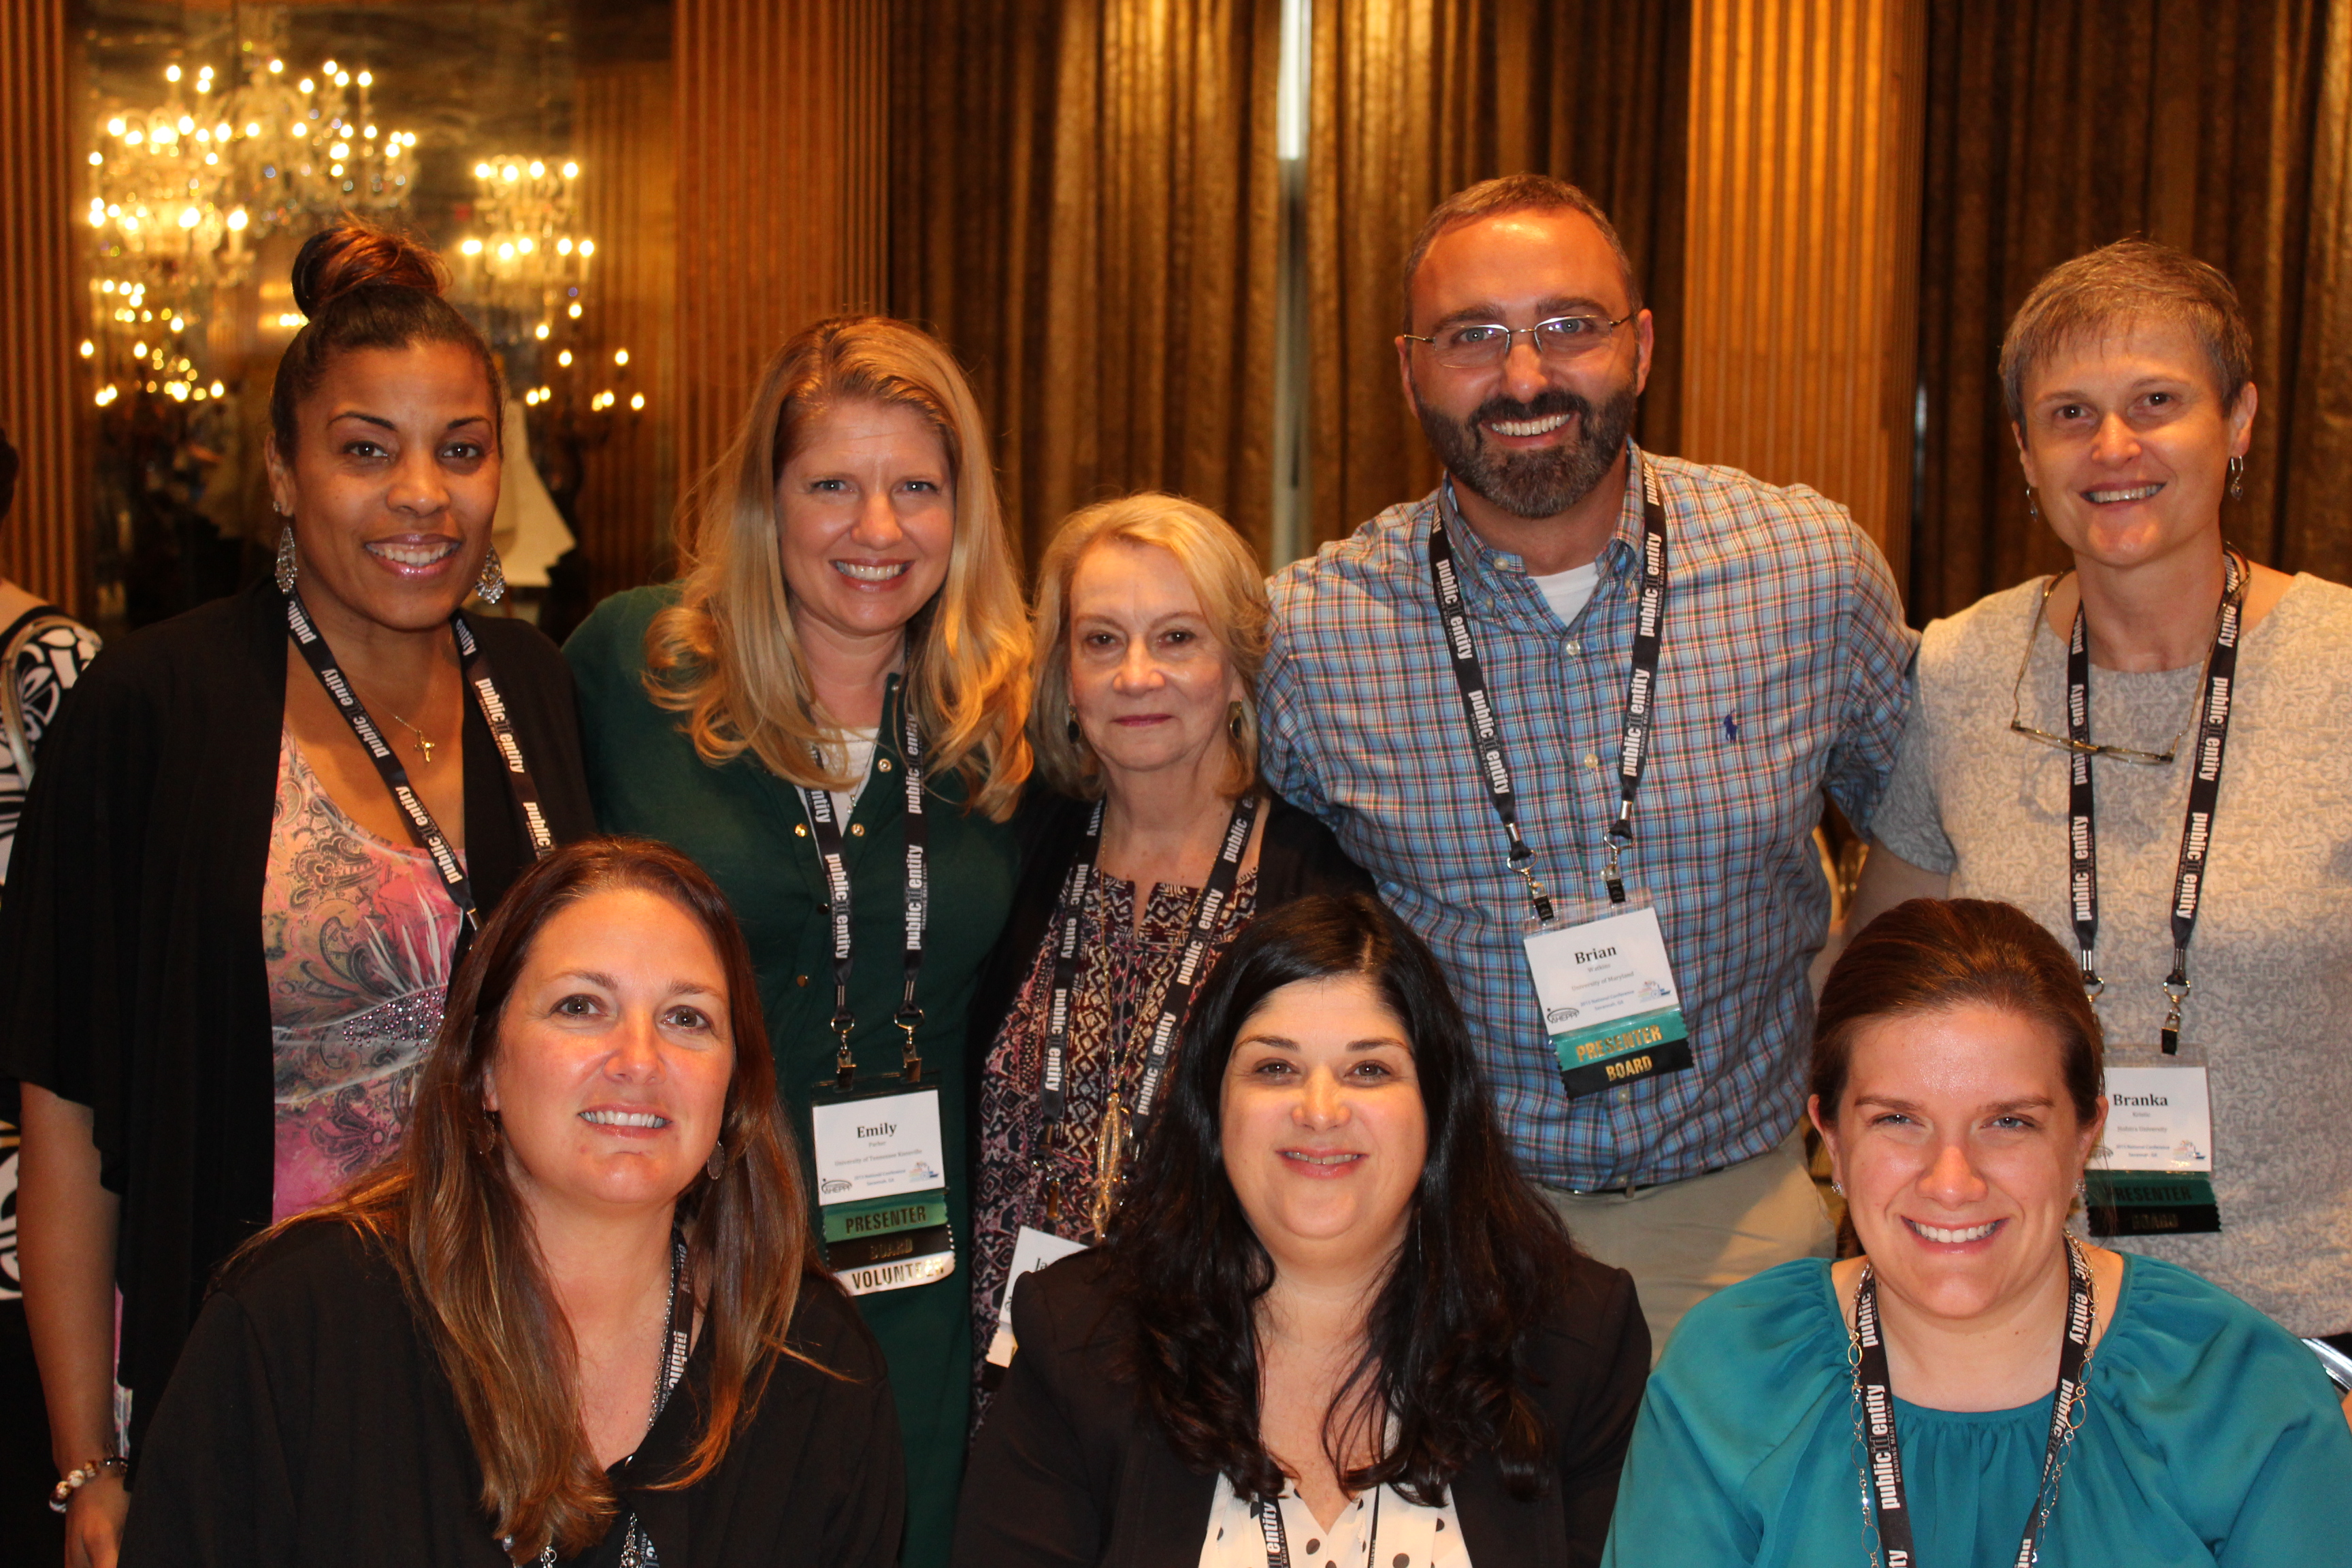 The AHEPPP Board of Directors celebrates AHEPPP Awards at the 2015 National Conference